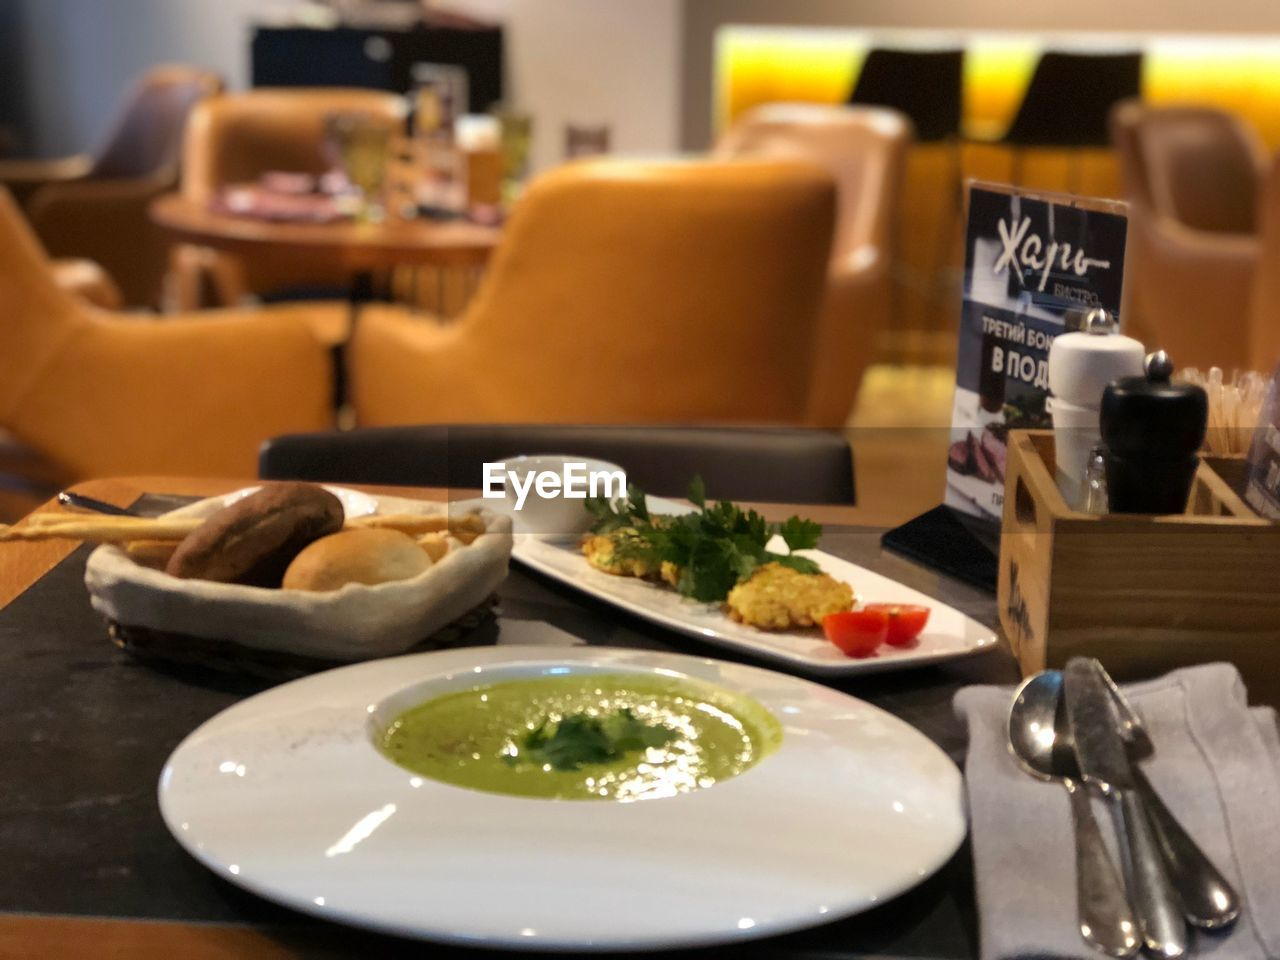 food and drink, food, table, indoors, freshness, healthy eating, bowl, wellbeing, plate, business, restaurant, no people, serving size, ready-to-eat, still life, meal, focus on foreground, vegetable, close-up, kitchen utensil, japanese food